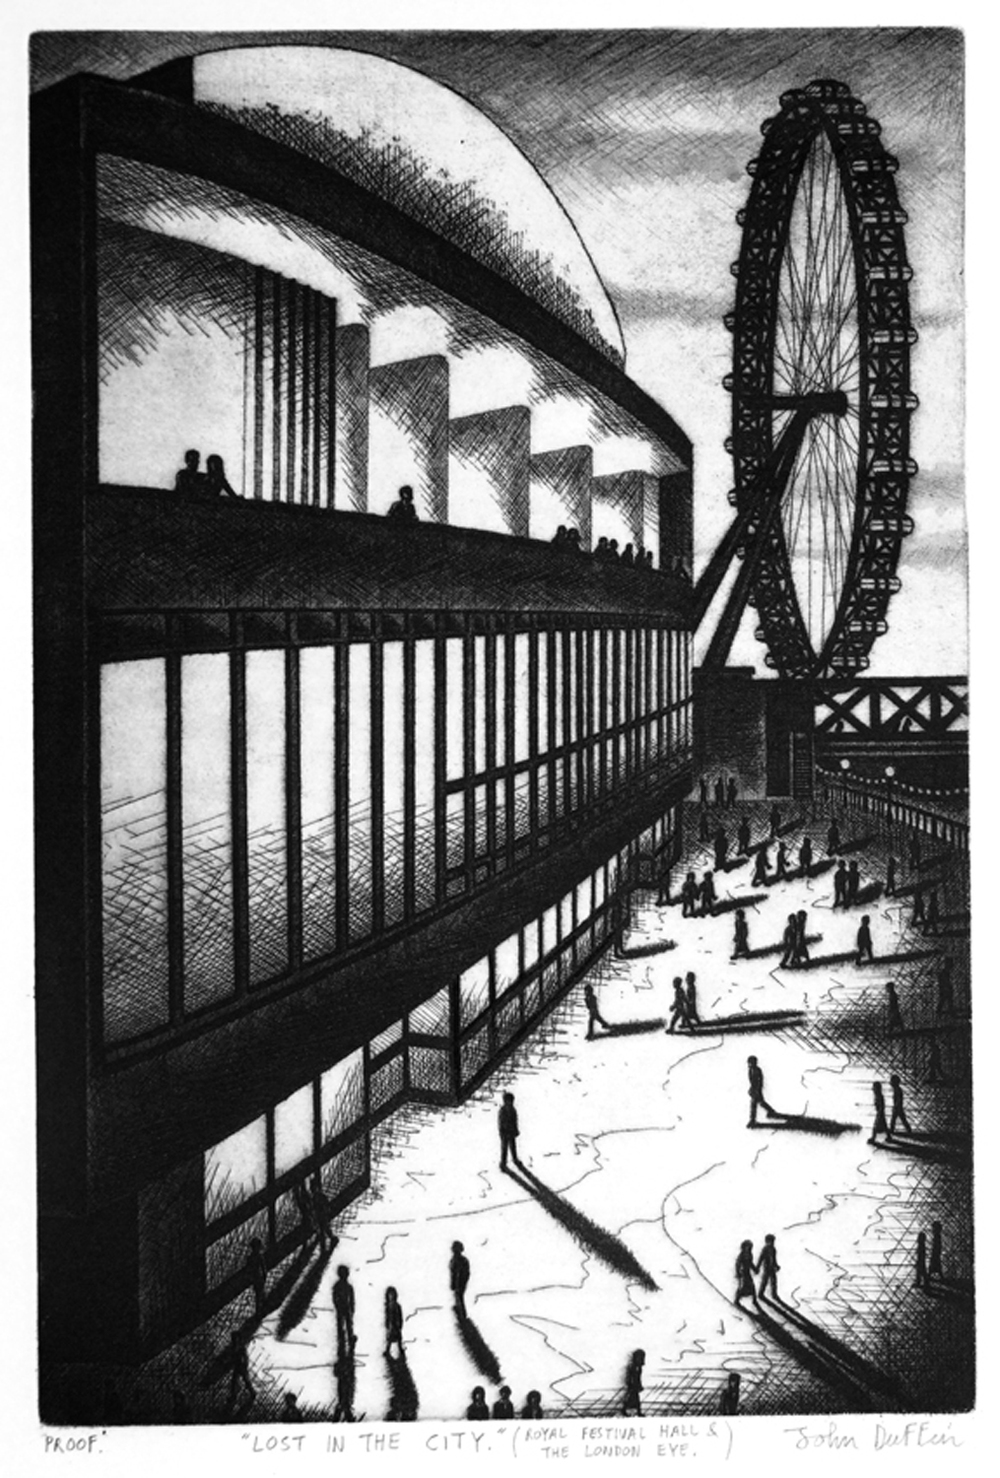 John Duffin   Lost in the City (Royal Festival Hall & The London Eye)   etching